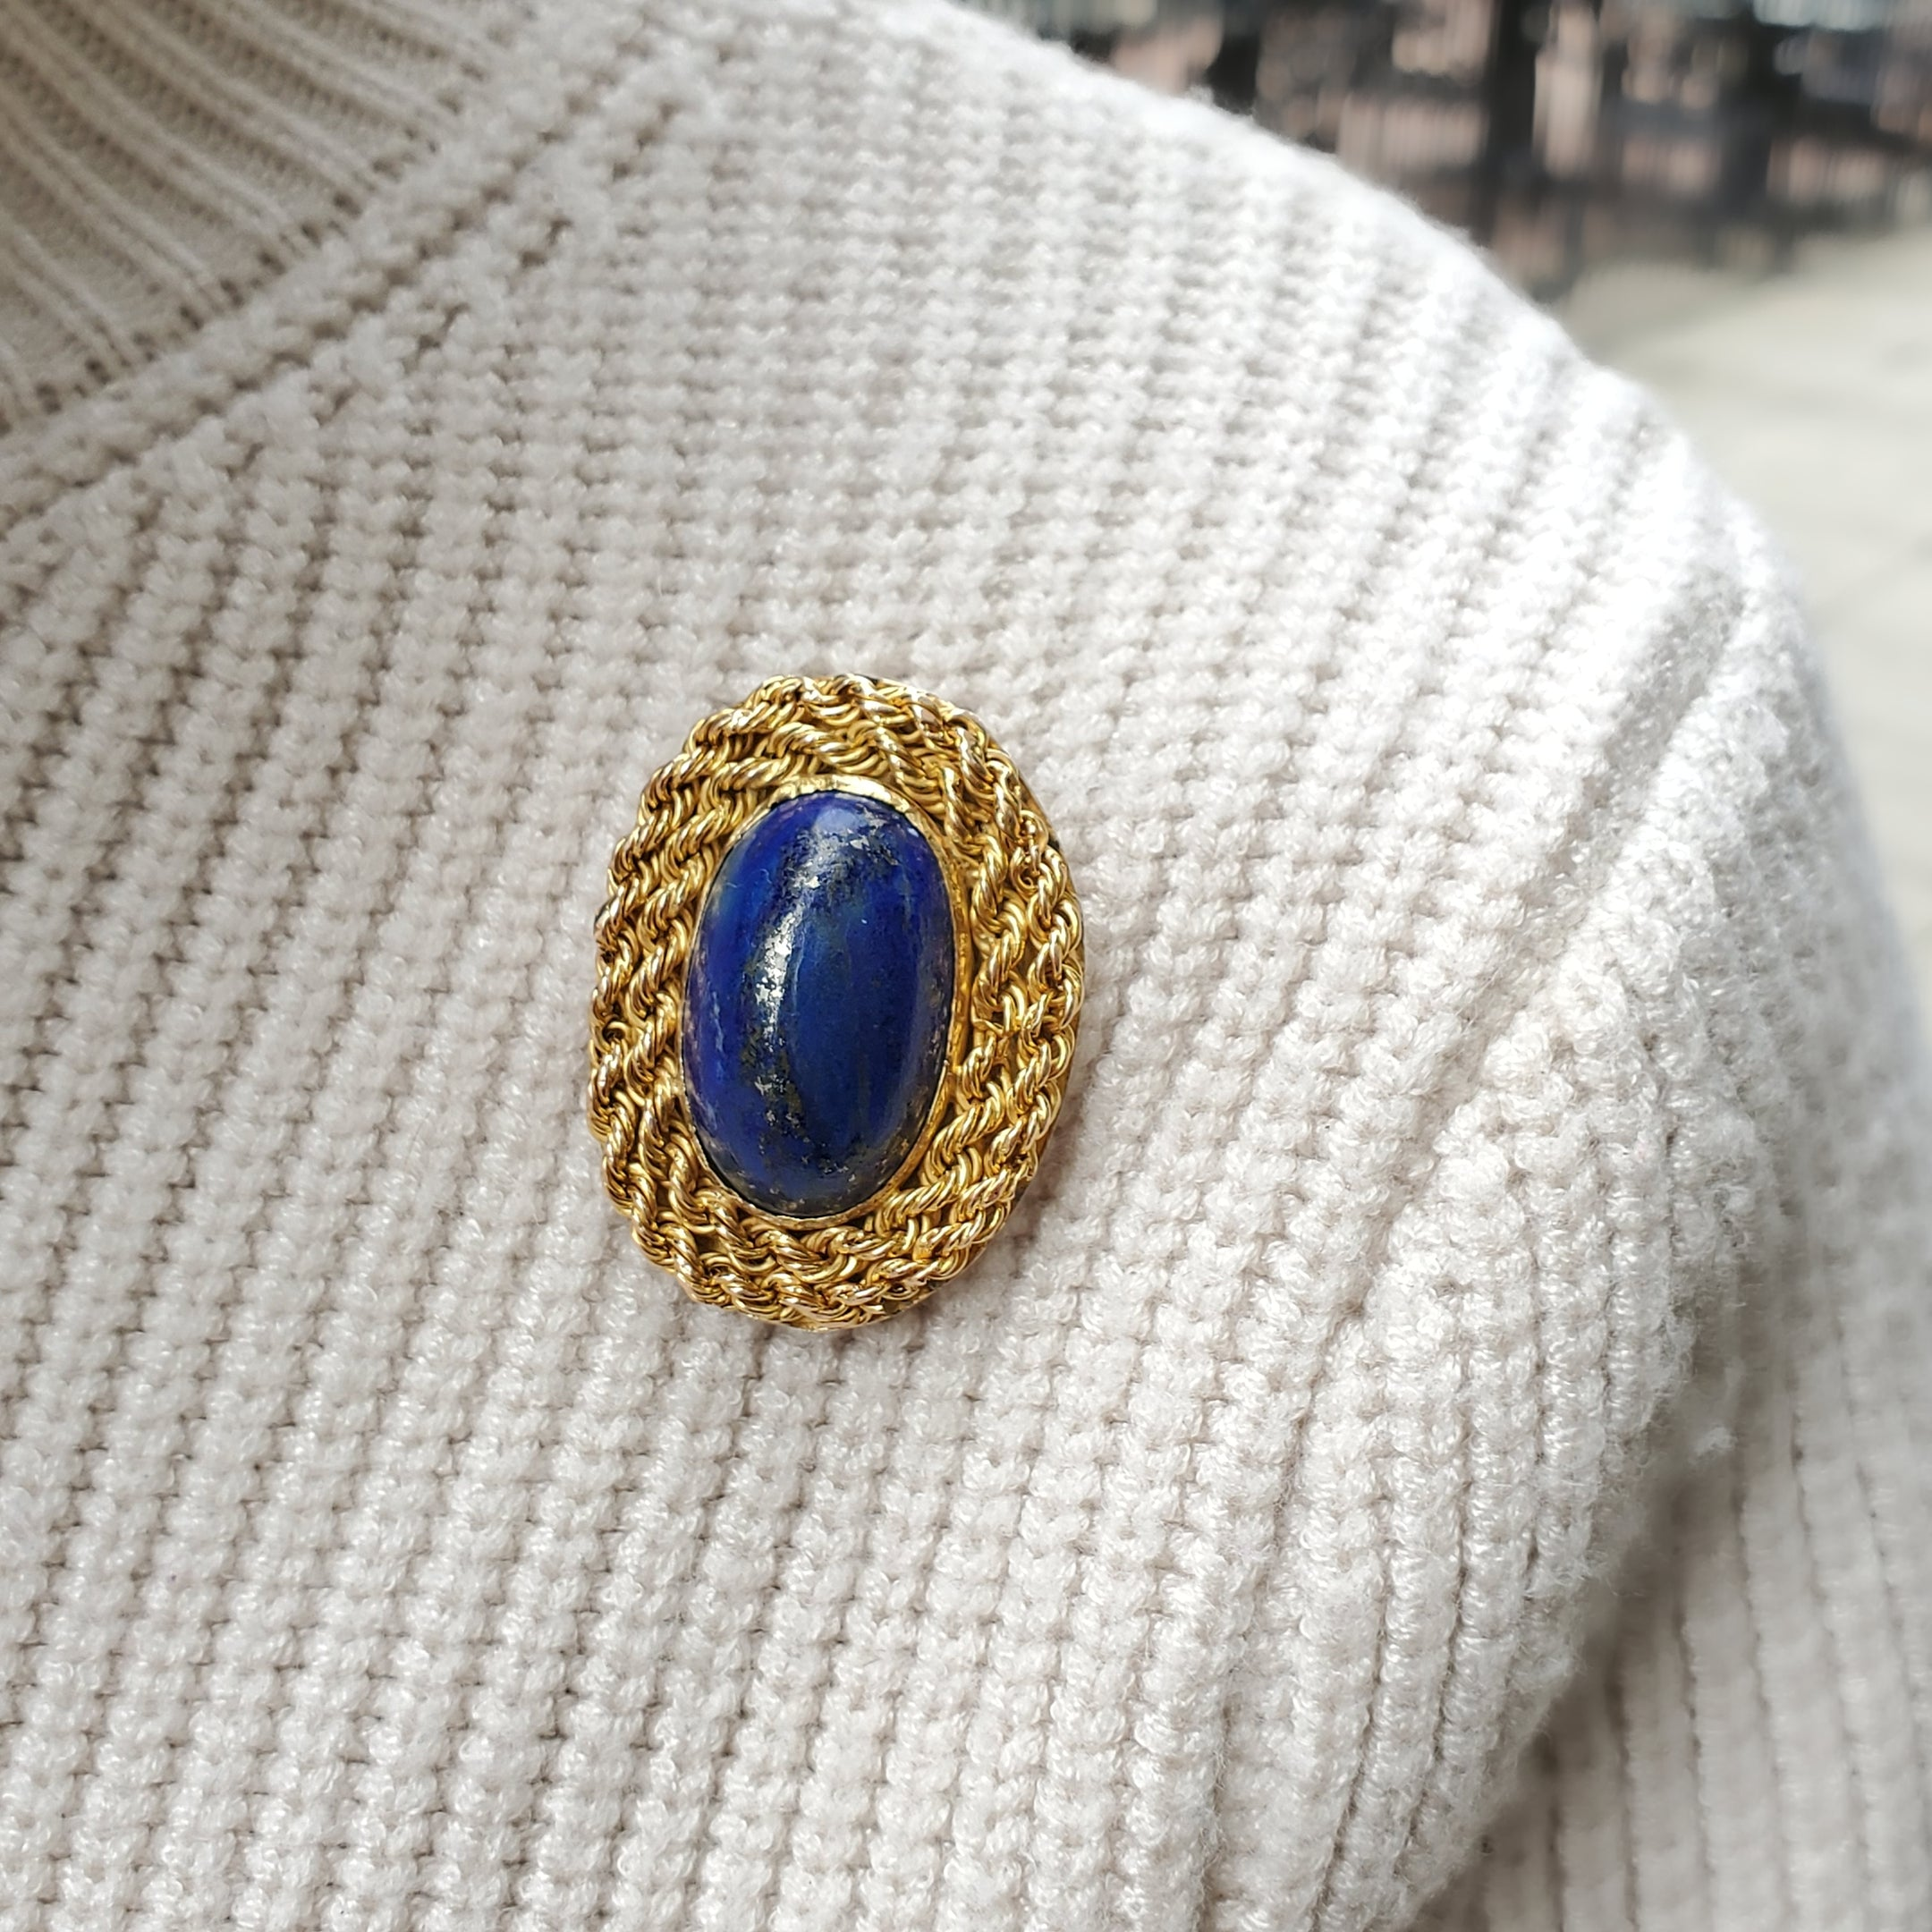 Estate 14k Yellow Gold Large Oval Lapis Lazuli Brooch